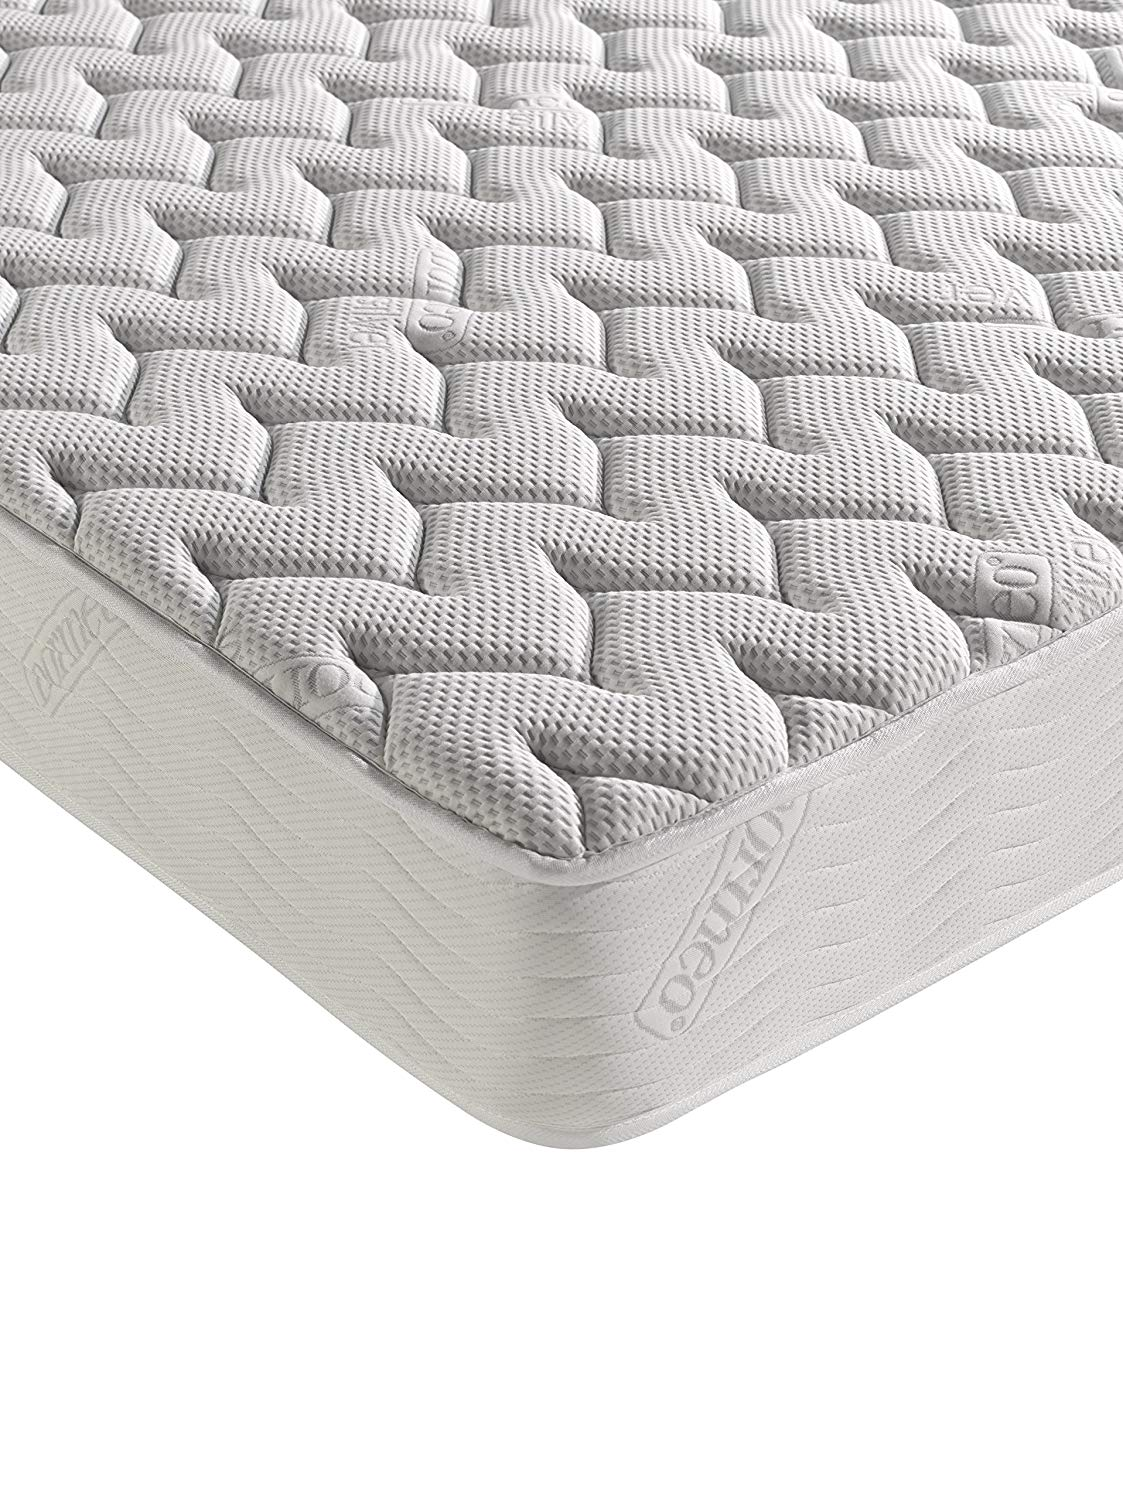 Dormeo Memory Silver Deluxe, Memory Foam Mattress, Firmness Medium/Soft, Size King